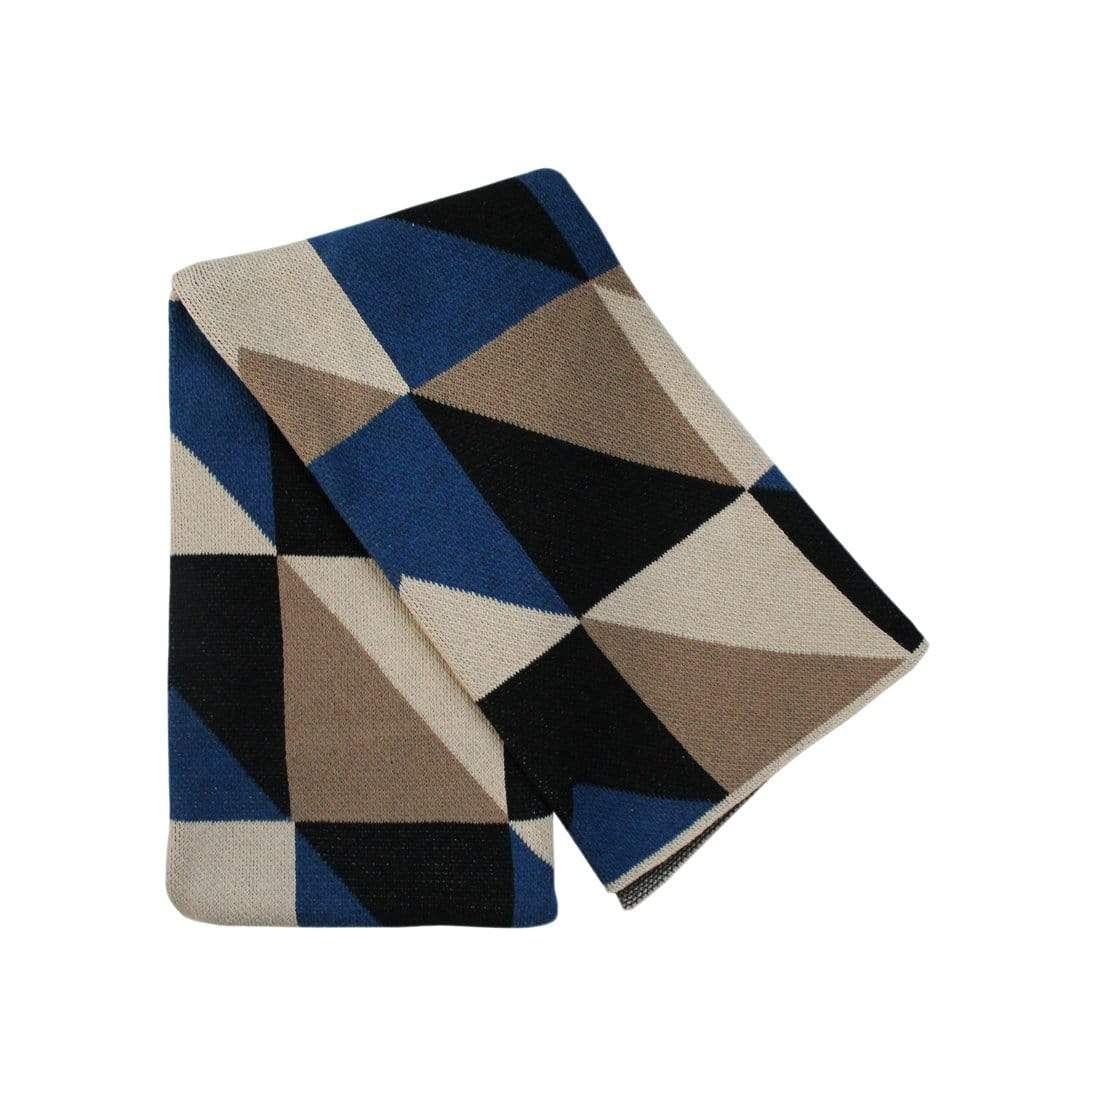 Happy Habitat Cushions + Throws Cobalt Angles Throw